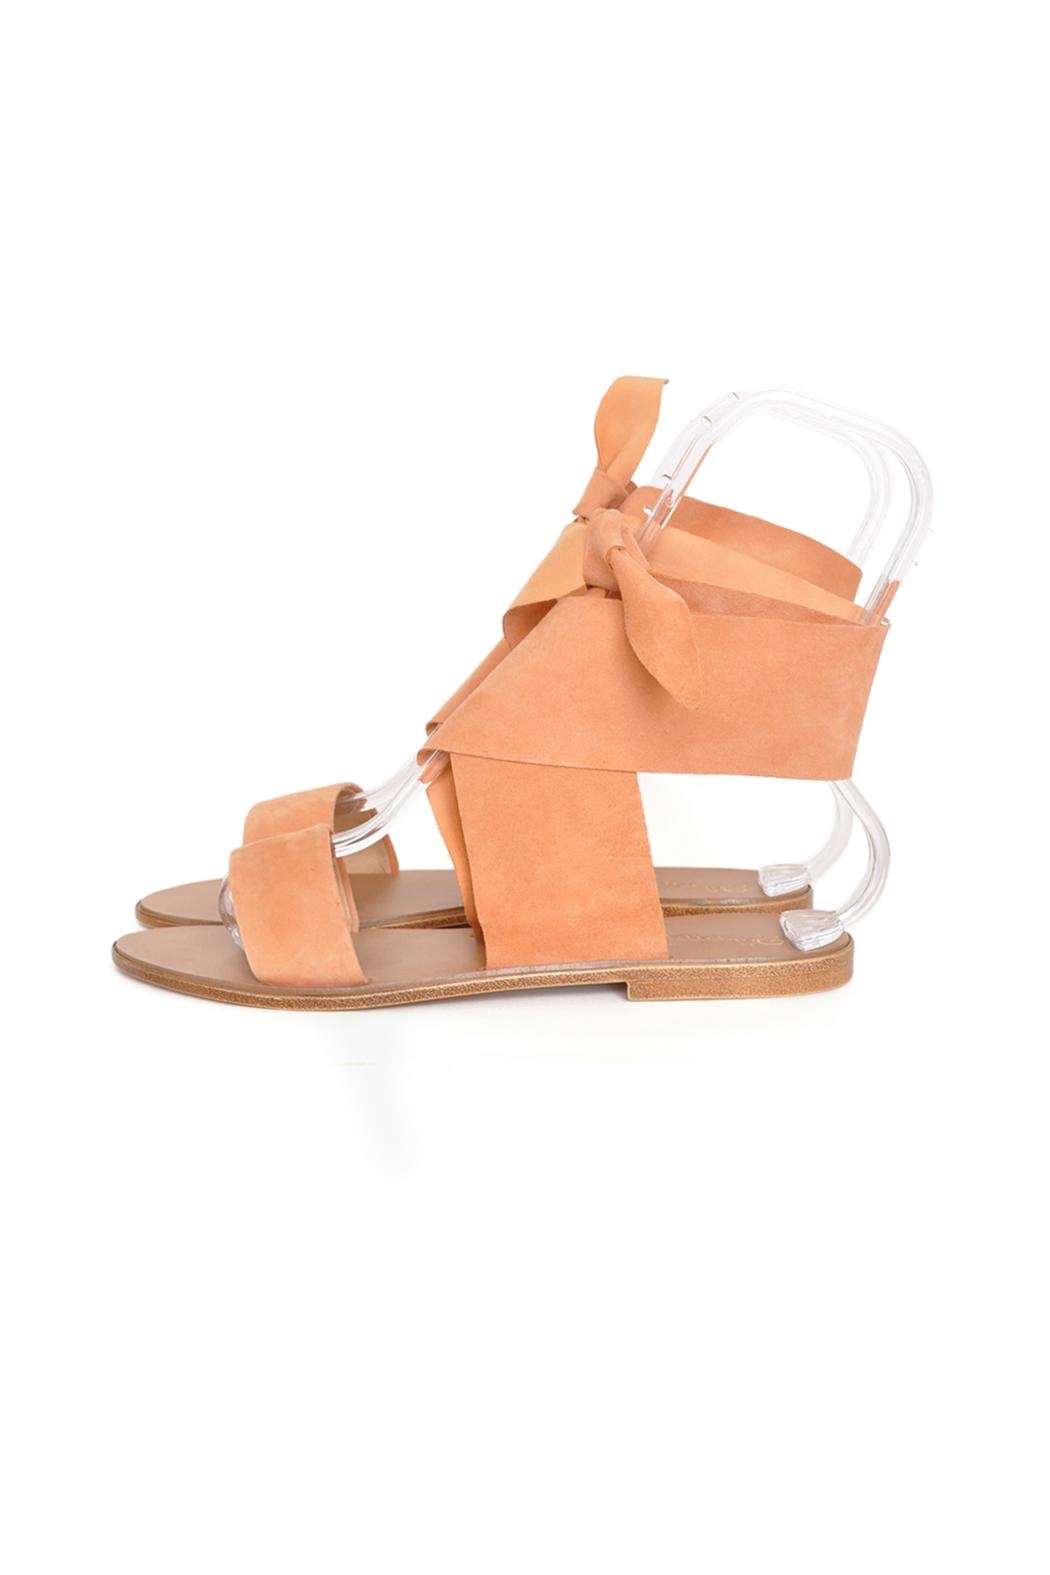 Seychelles Suede Tie Sandals from Portland by Vintalier — Shoptiques e7671ee4dab9